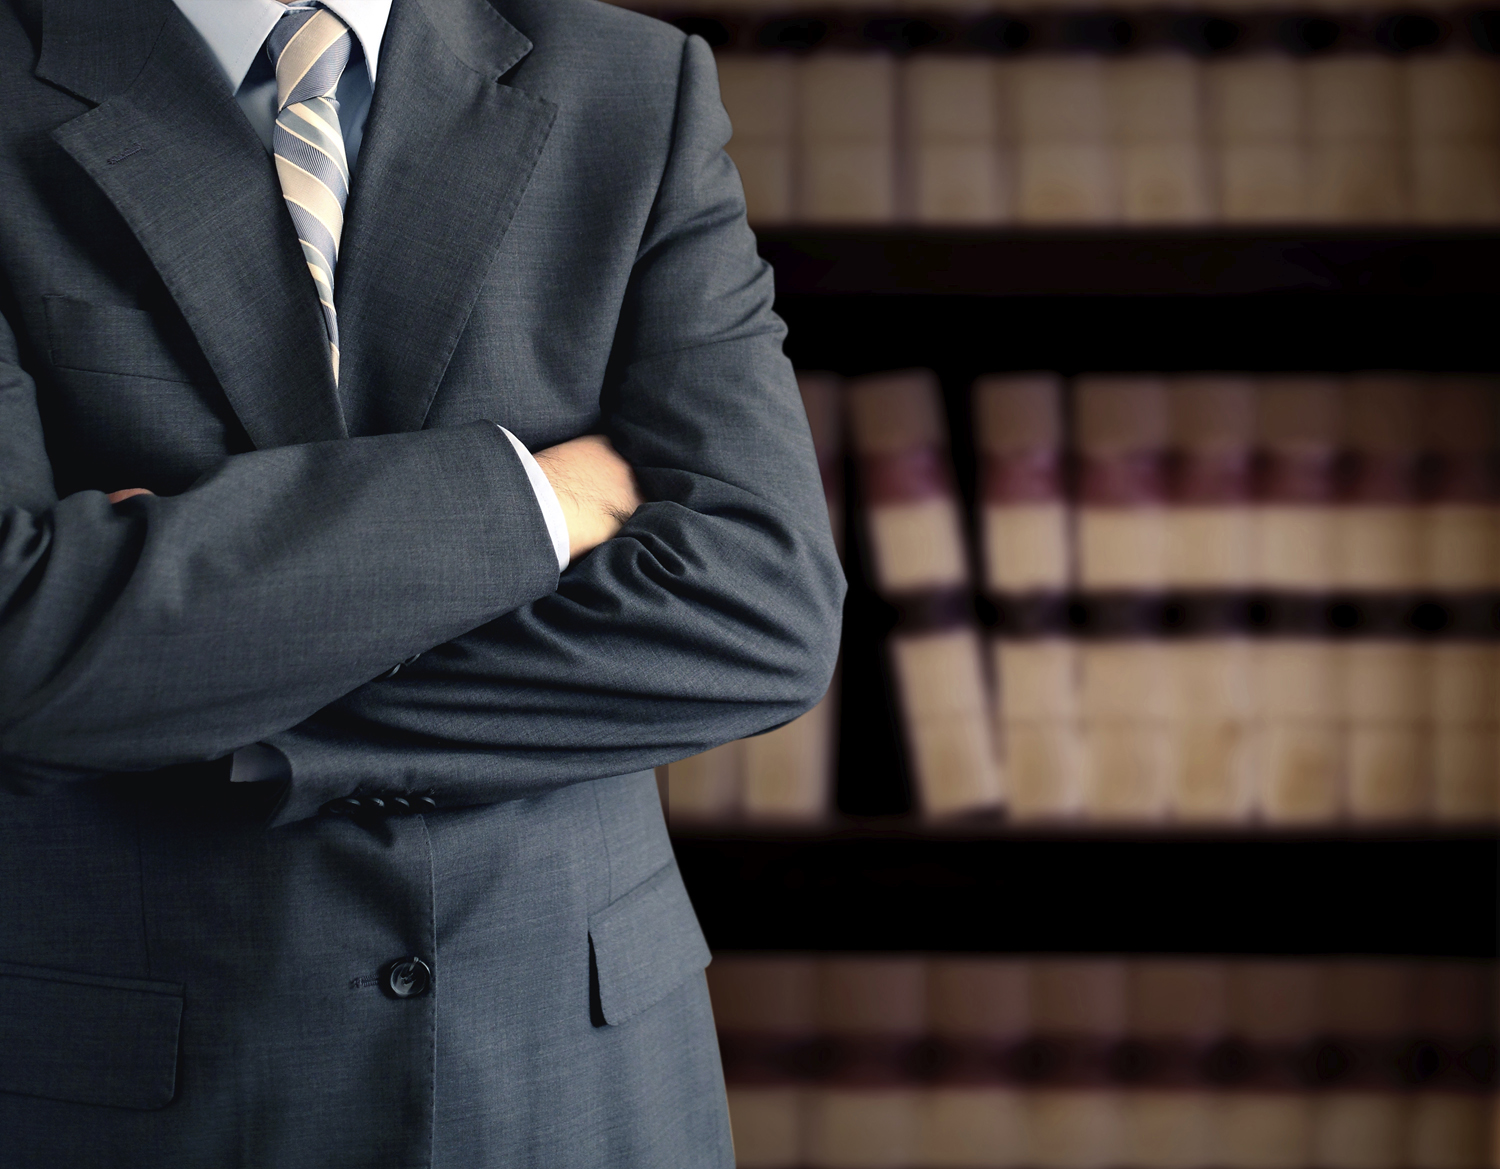 Biggest Questions About the Court Reporting Industry